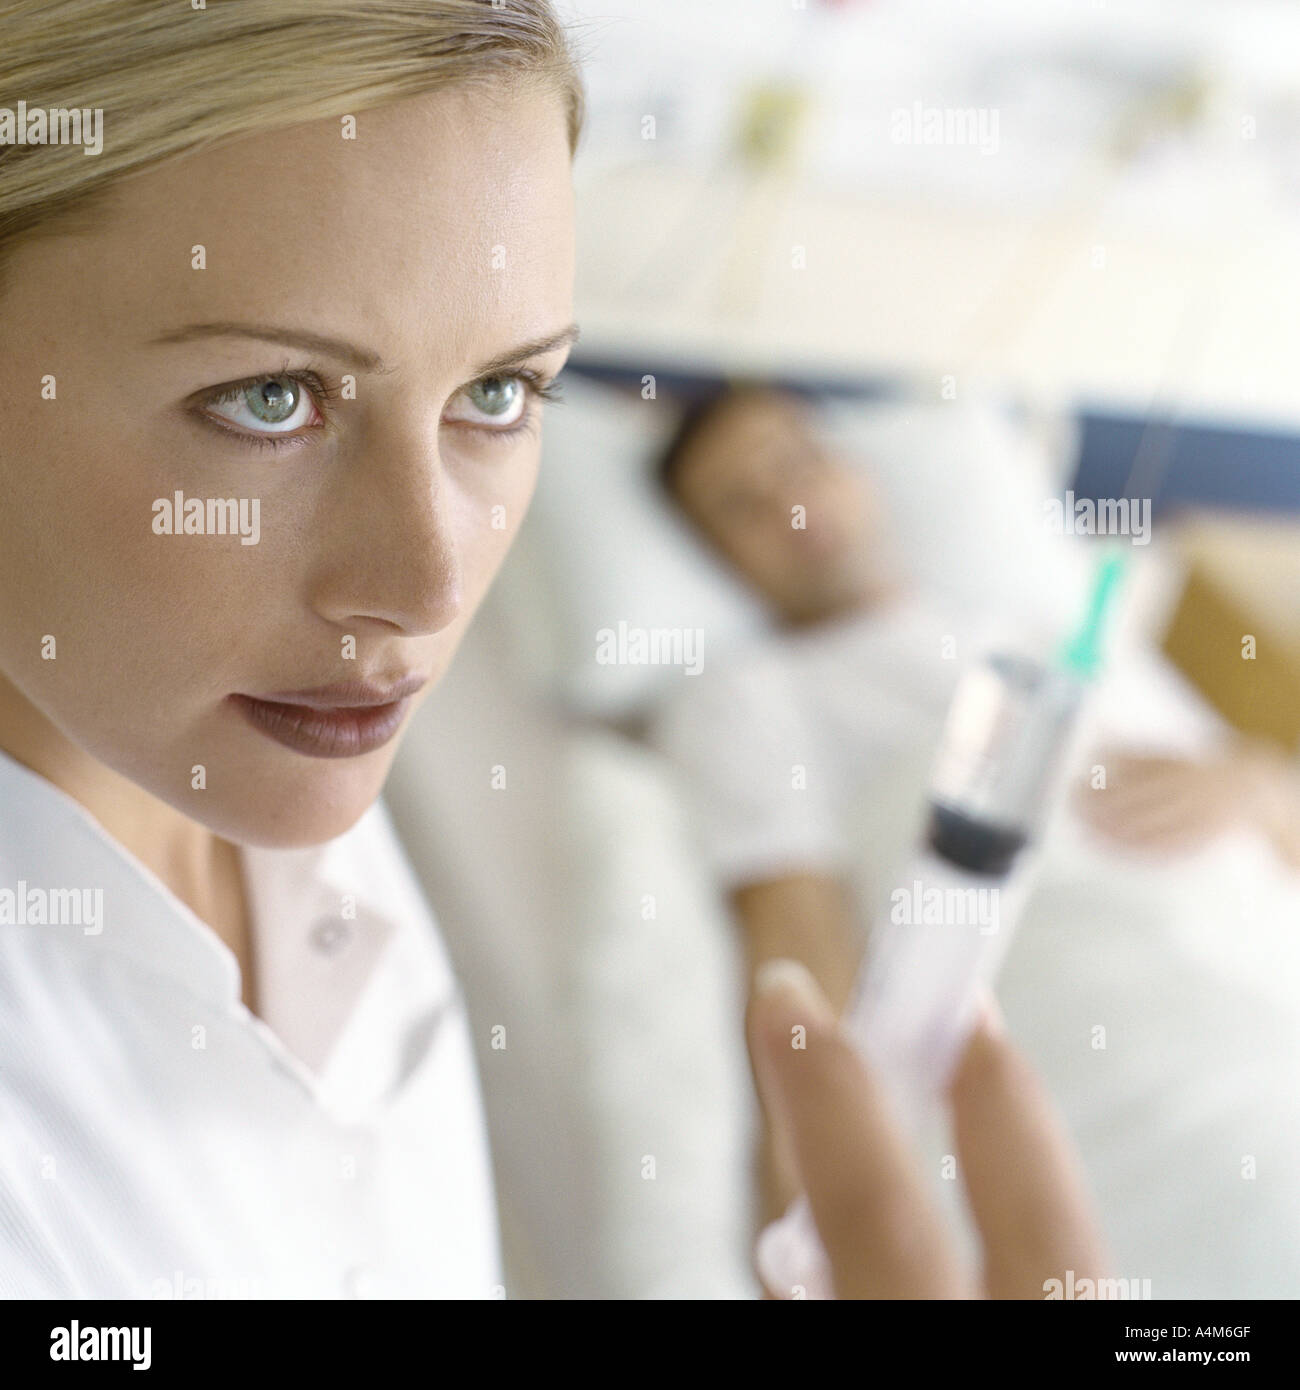 Nurse holding up syringe in front of patient Stock Photo